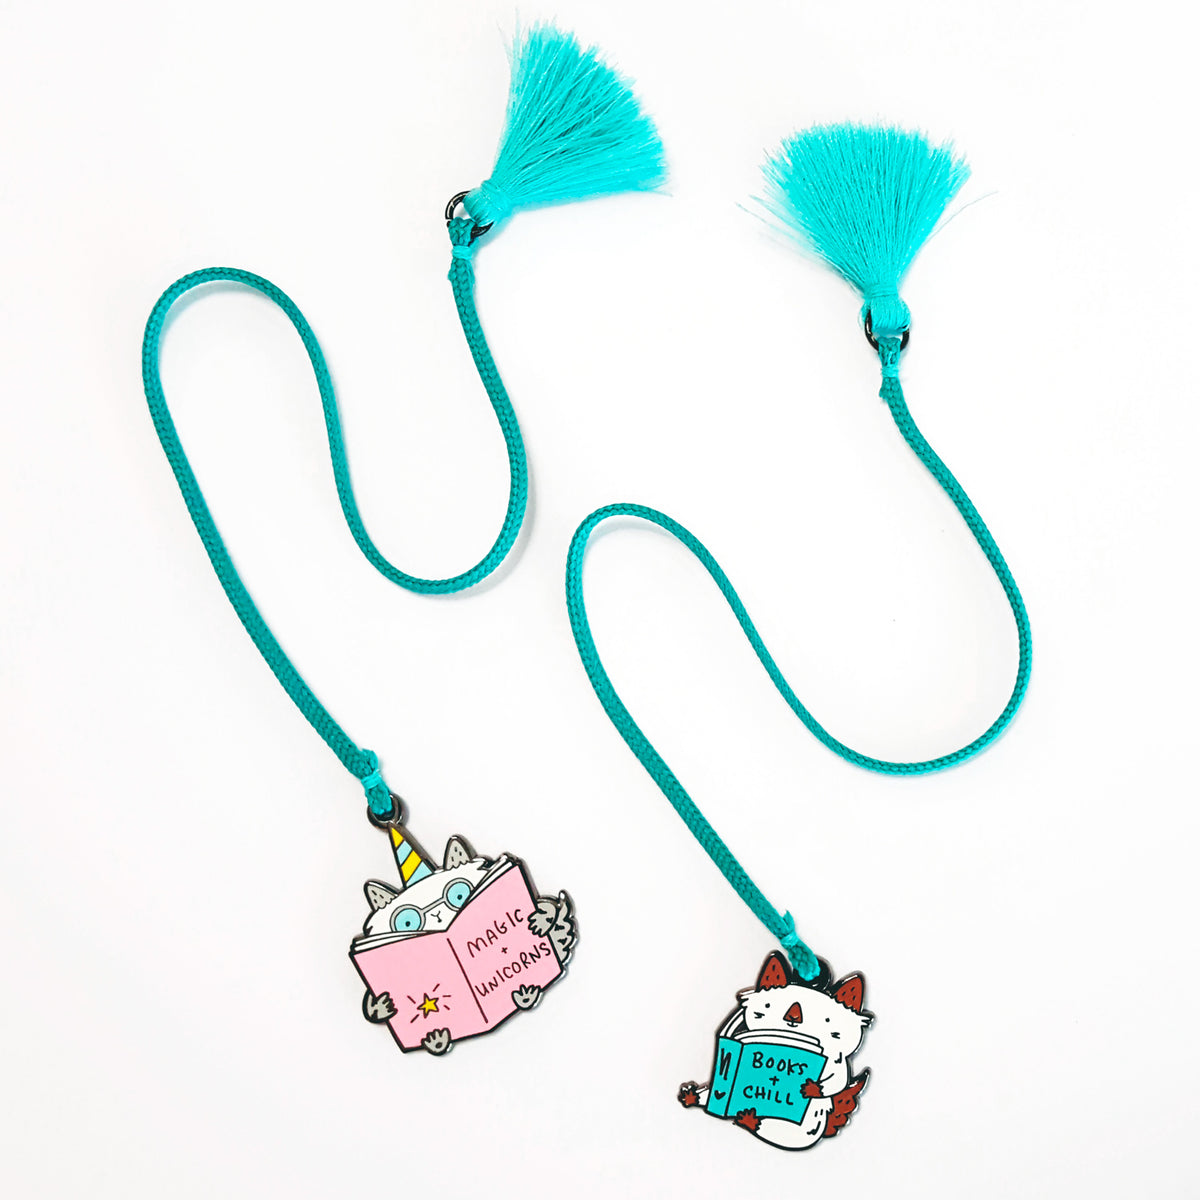 Enamel cat charm and tassel bookmarks by My Cat Is People. #booksandchill